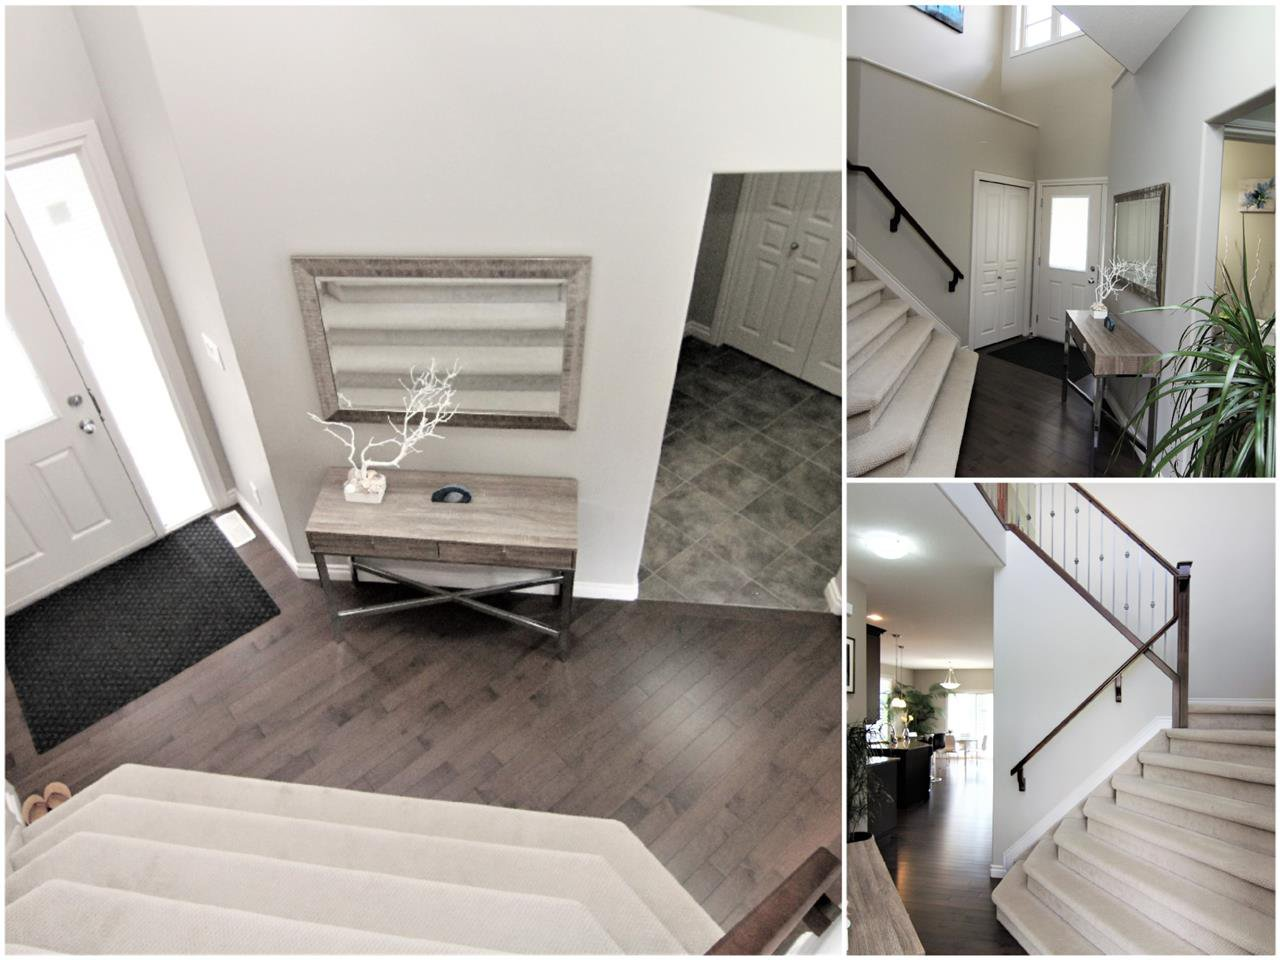 Main Photo: 845 Armitage Wynd in Edmonton: Zone 56 House for sale : MLS®# E4163363